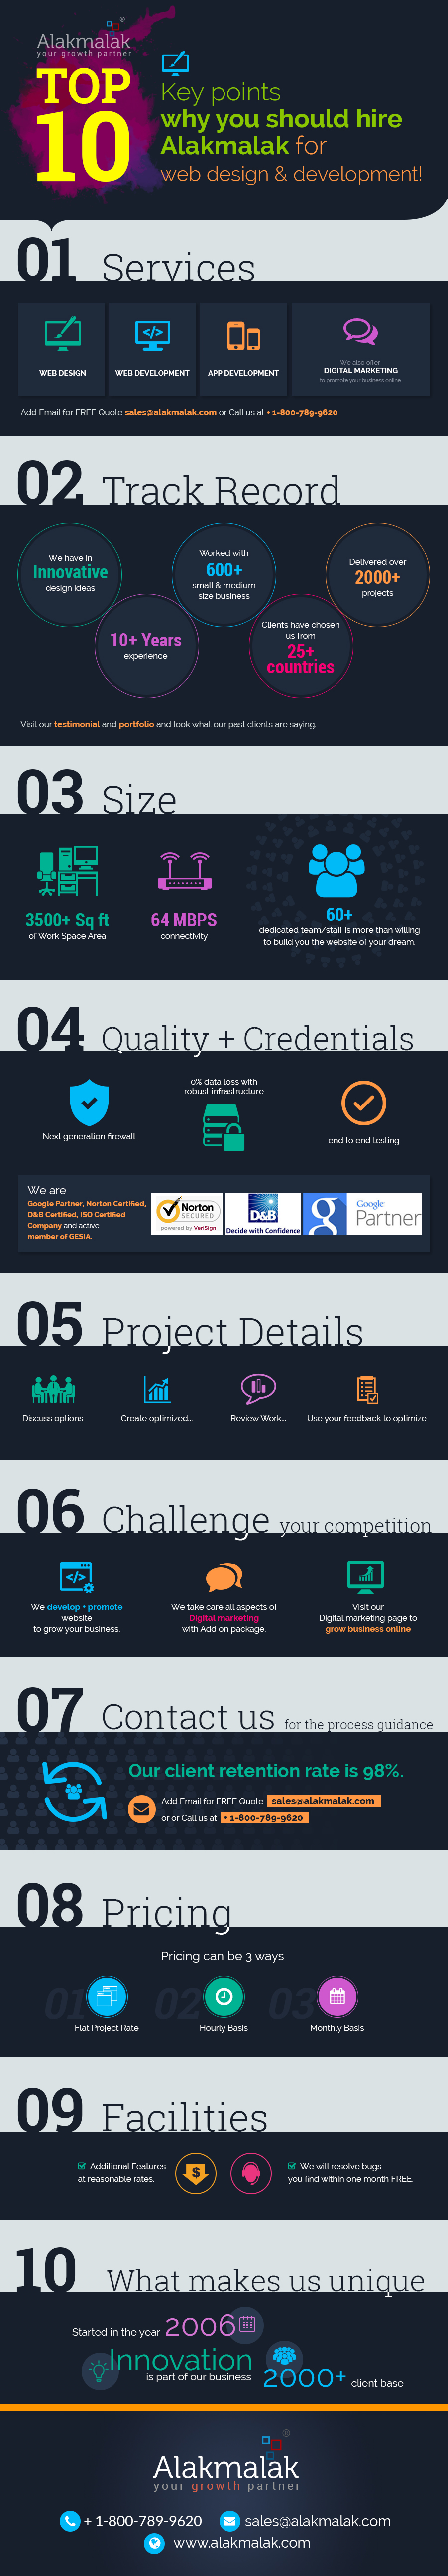 Top 10 key points why you should hire alakmalak for web design development